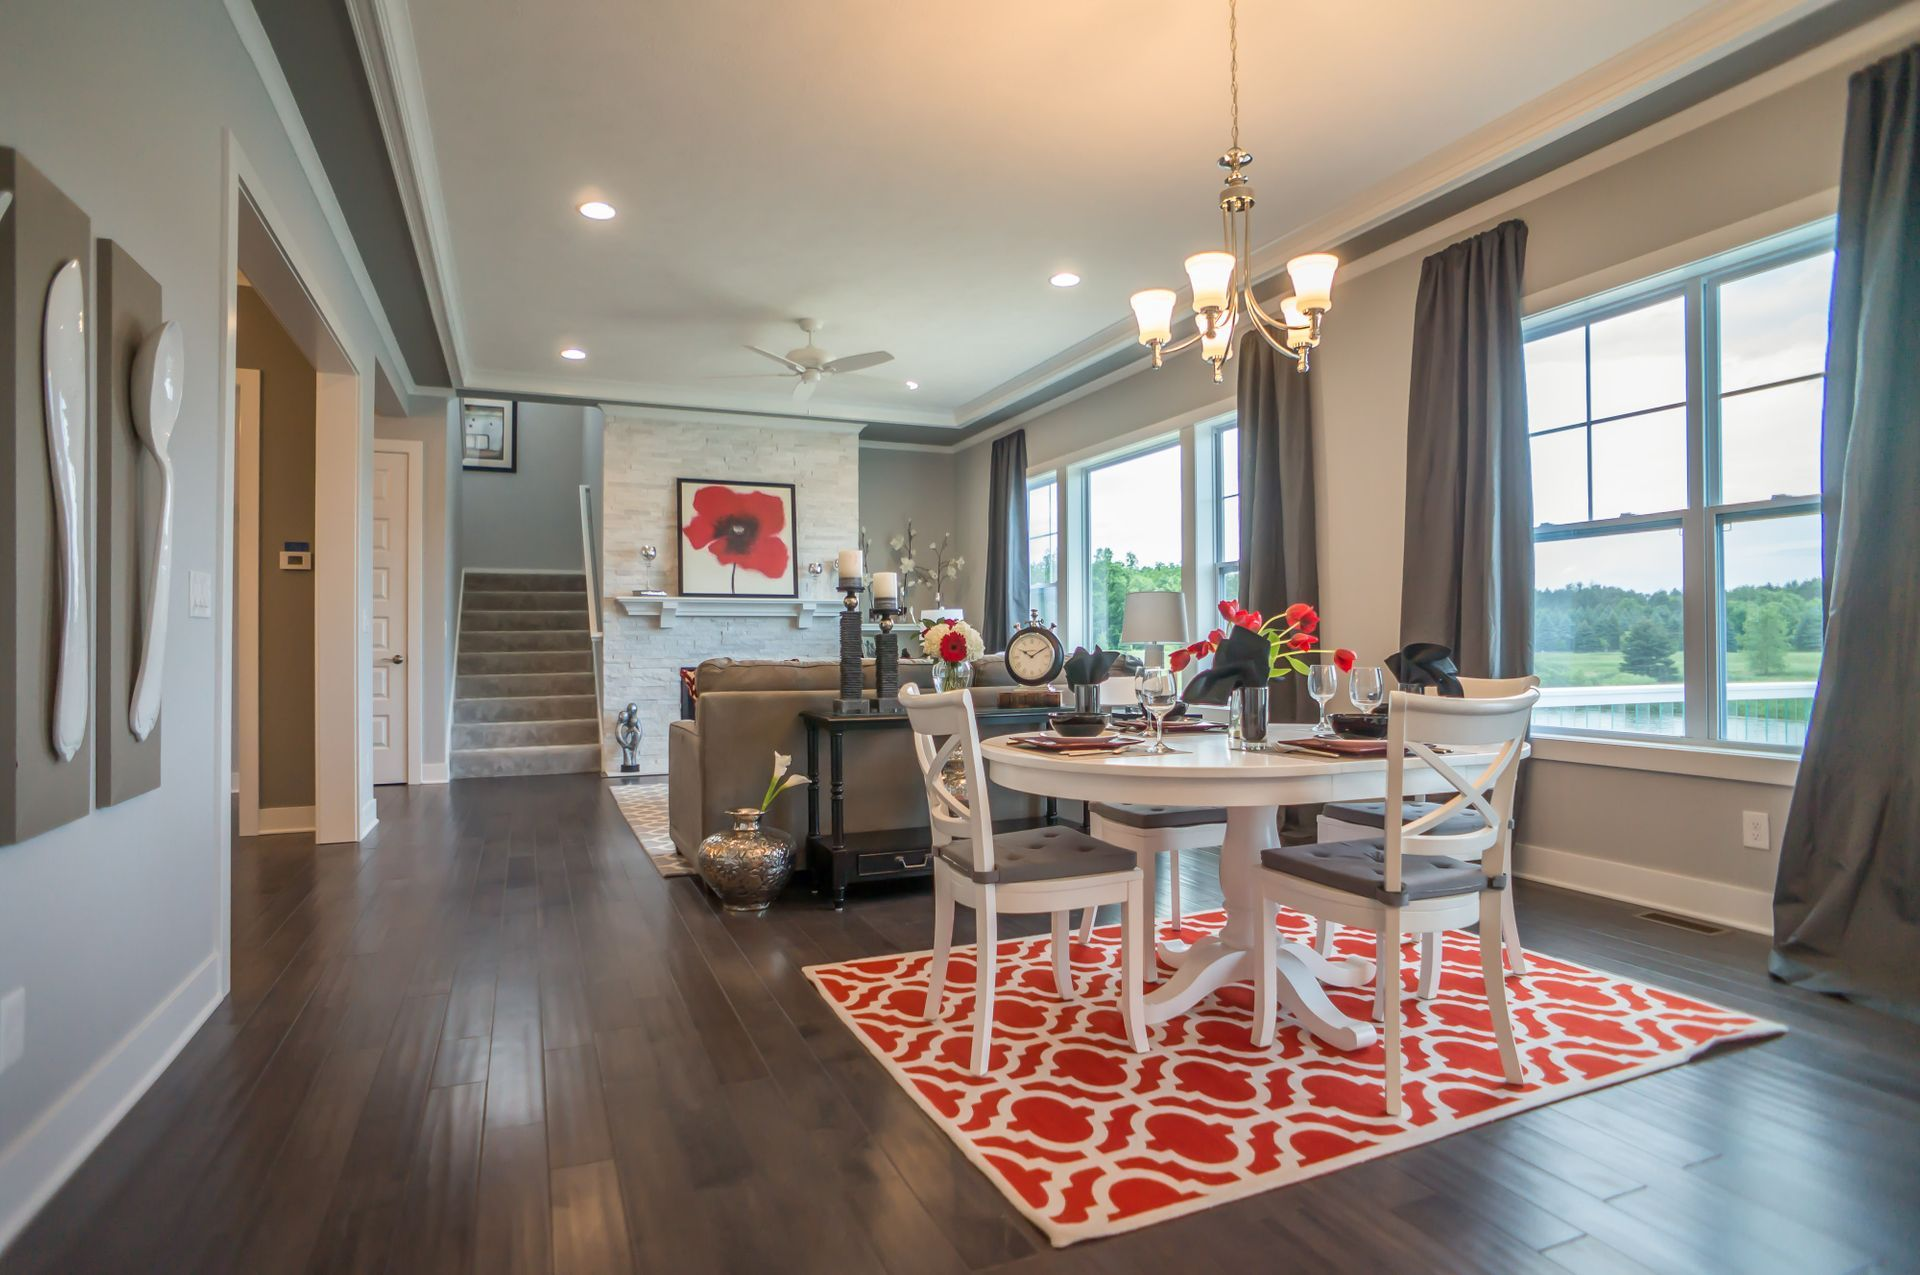 Kitchen featured in the Maxwell By Mayberry Homes in Flint, MI